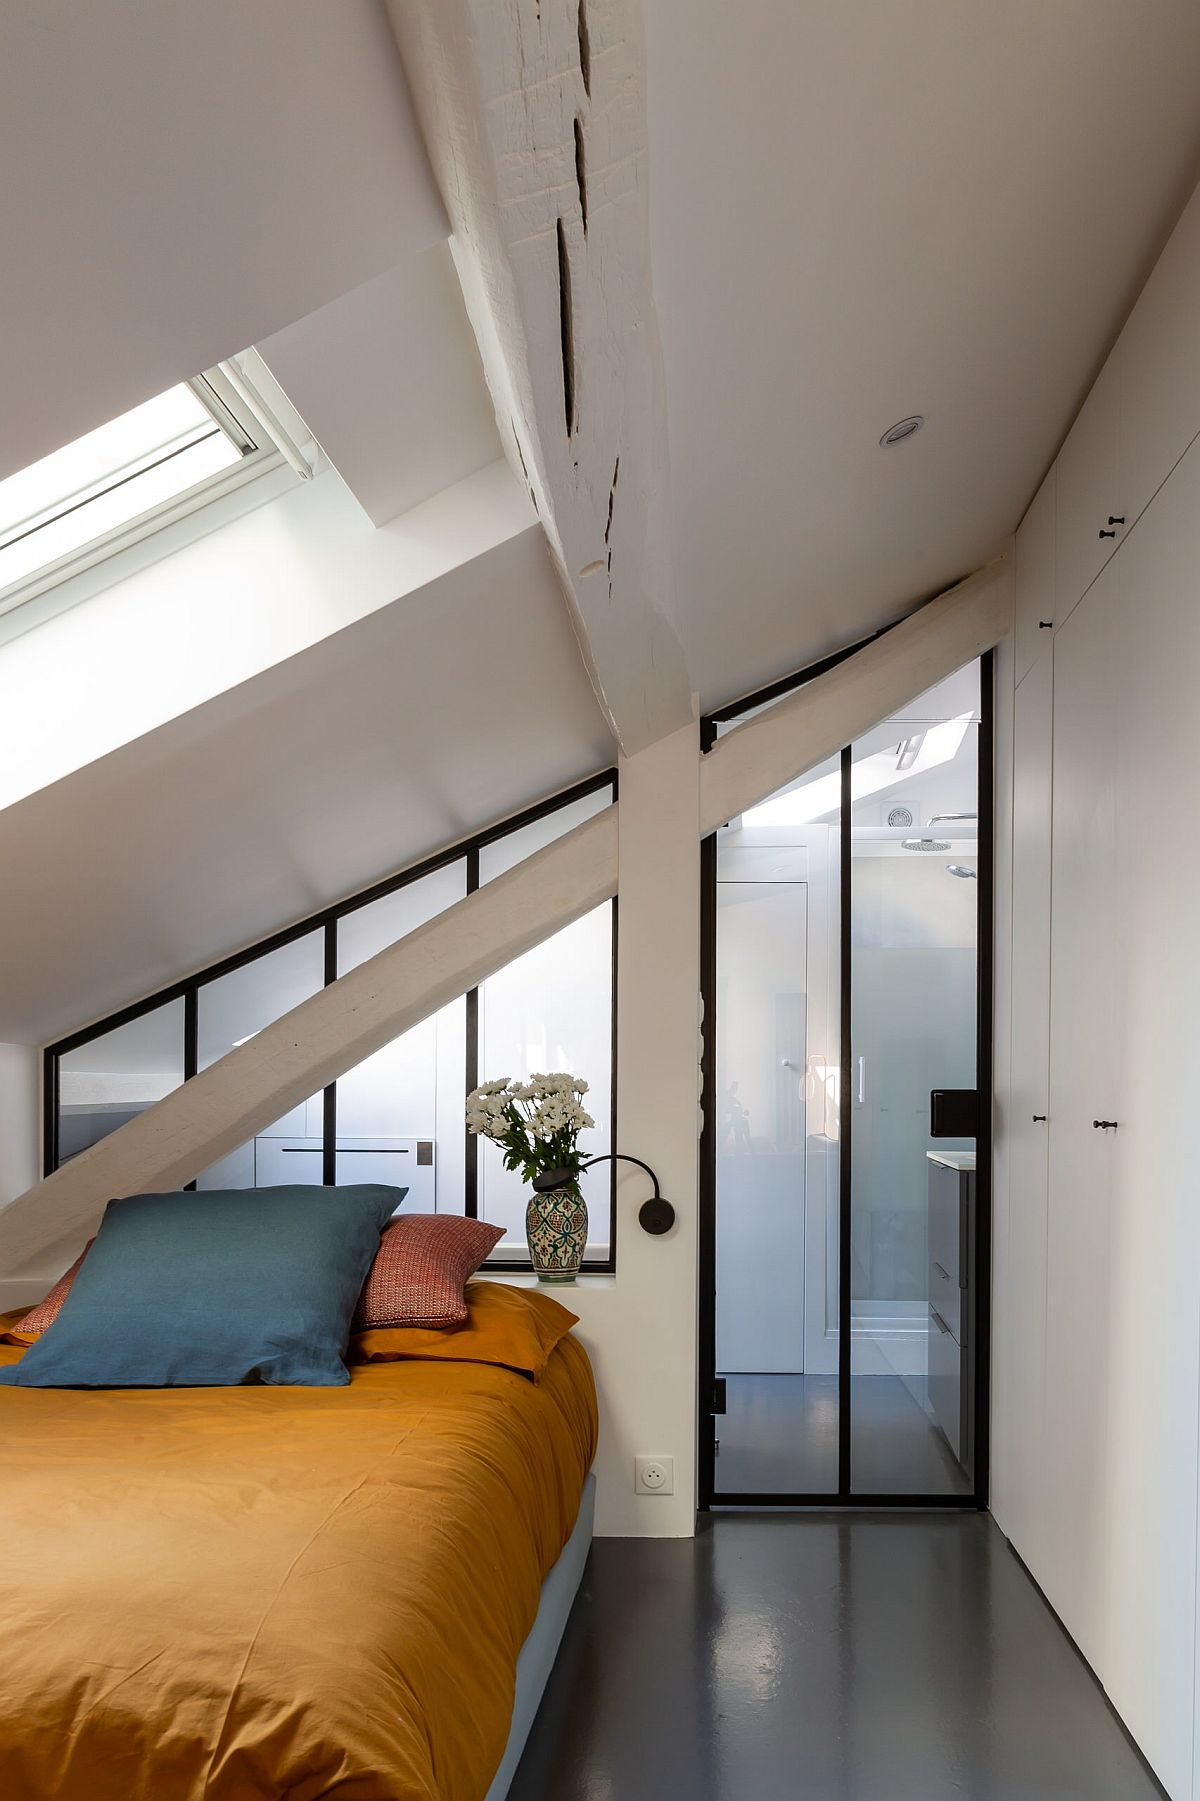 Light-filled-small-bedroom-of-French-apartment-with-white-walls-skylights-gray-floor-and-colorful-bedding-86475